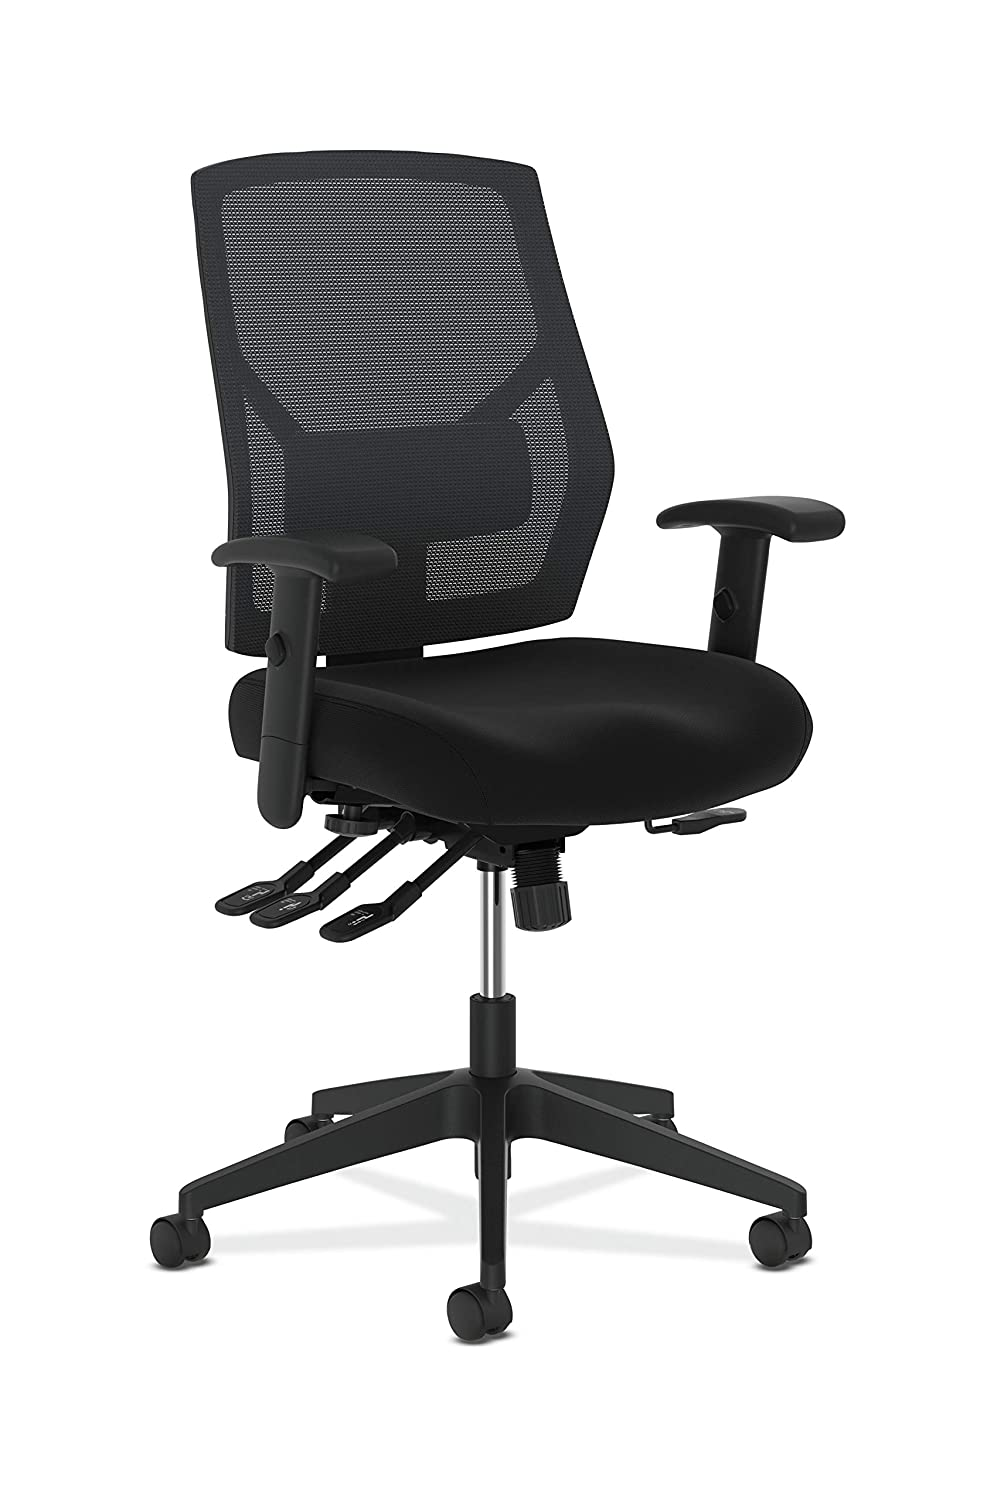 The HON Company BSXVL582ES10T Basyx Mid Back Comfortable Task Chair High Multi-Function, Fabric